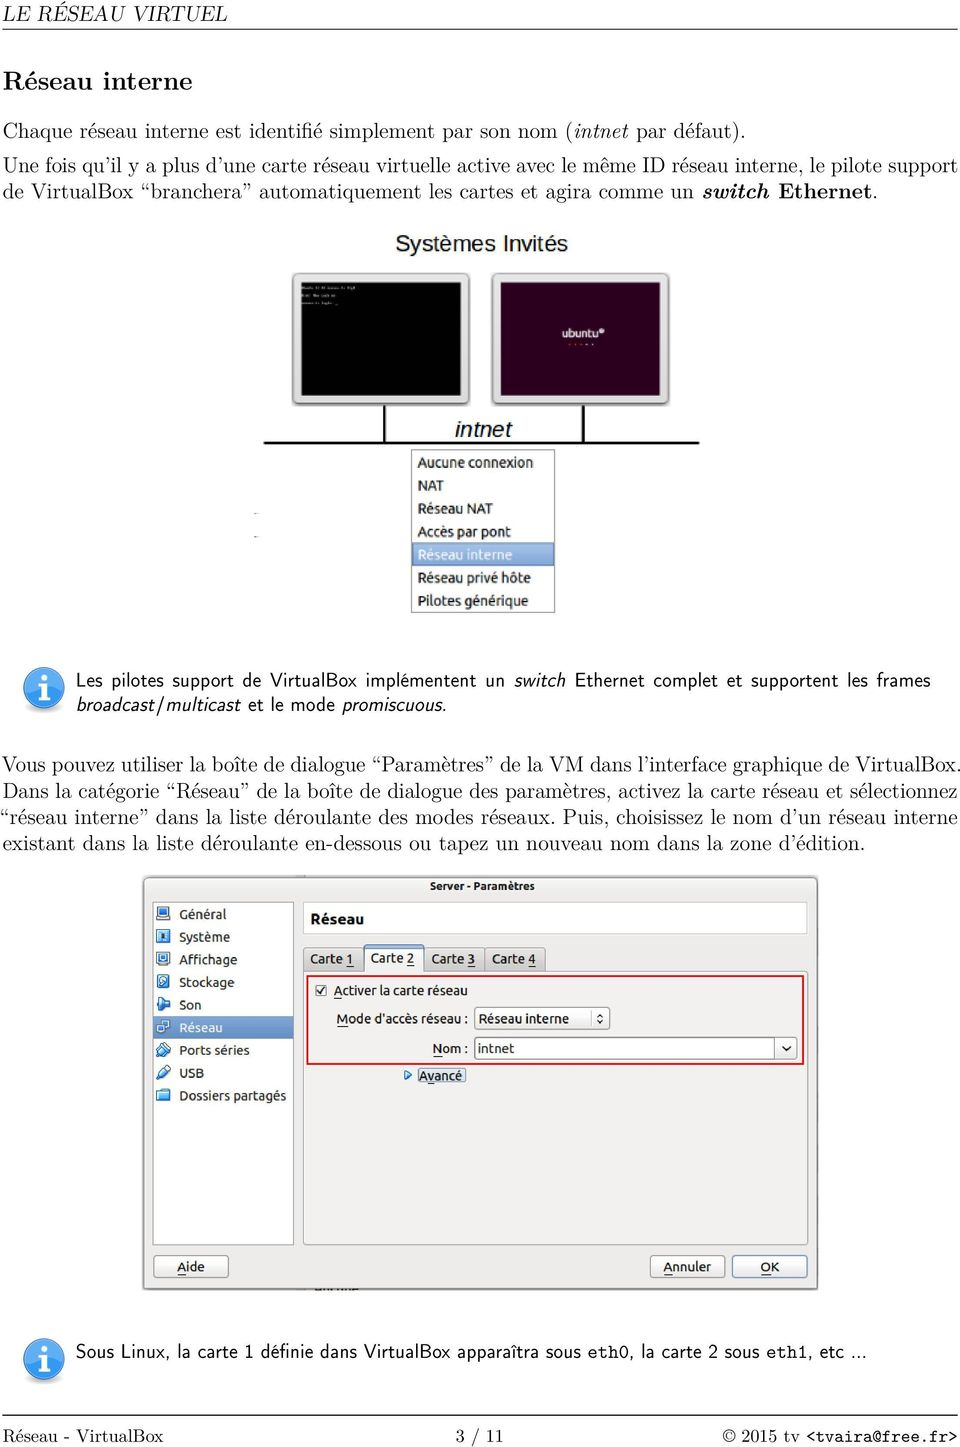 Les pilotes support de VirtualBox implémentent un switch Ethernet complet et supportent les frames broadcast/multicast et le mode promiscuous.